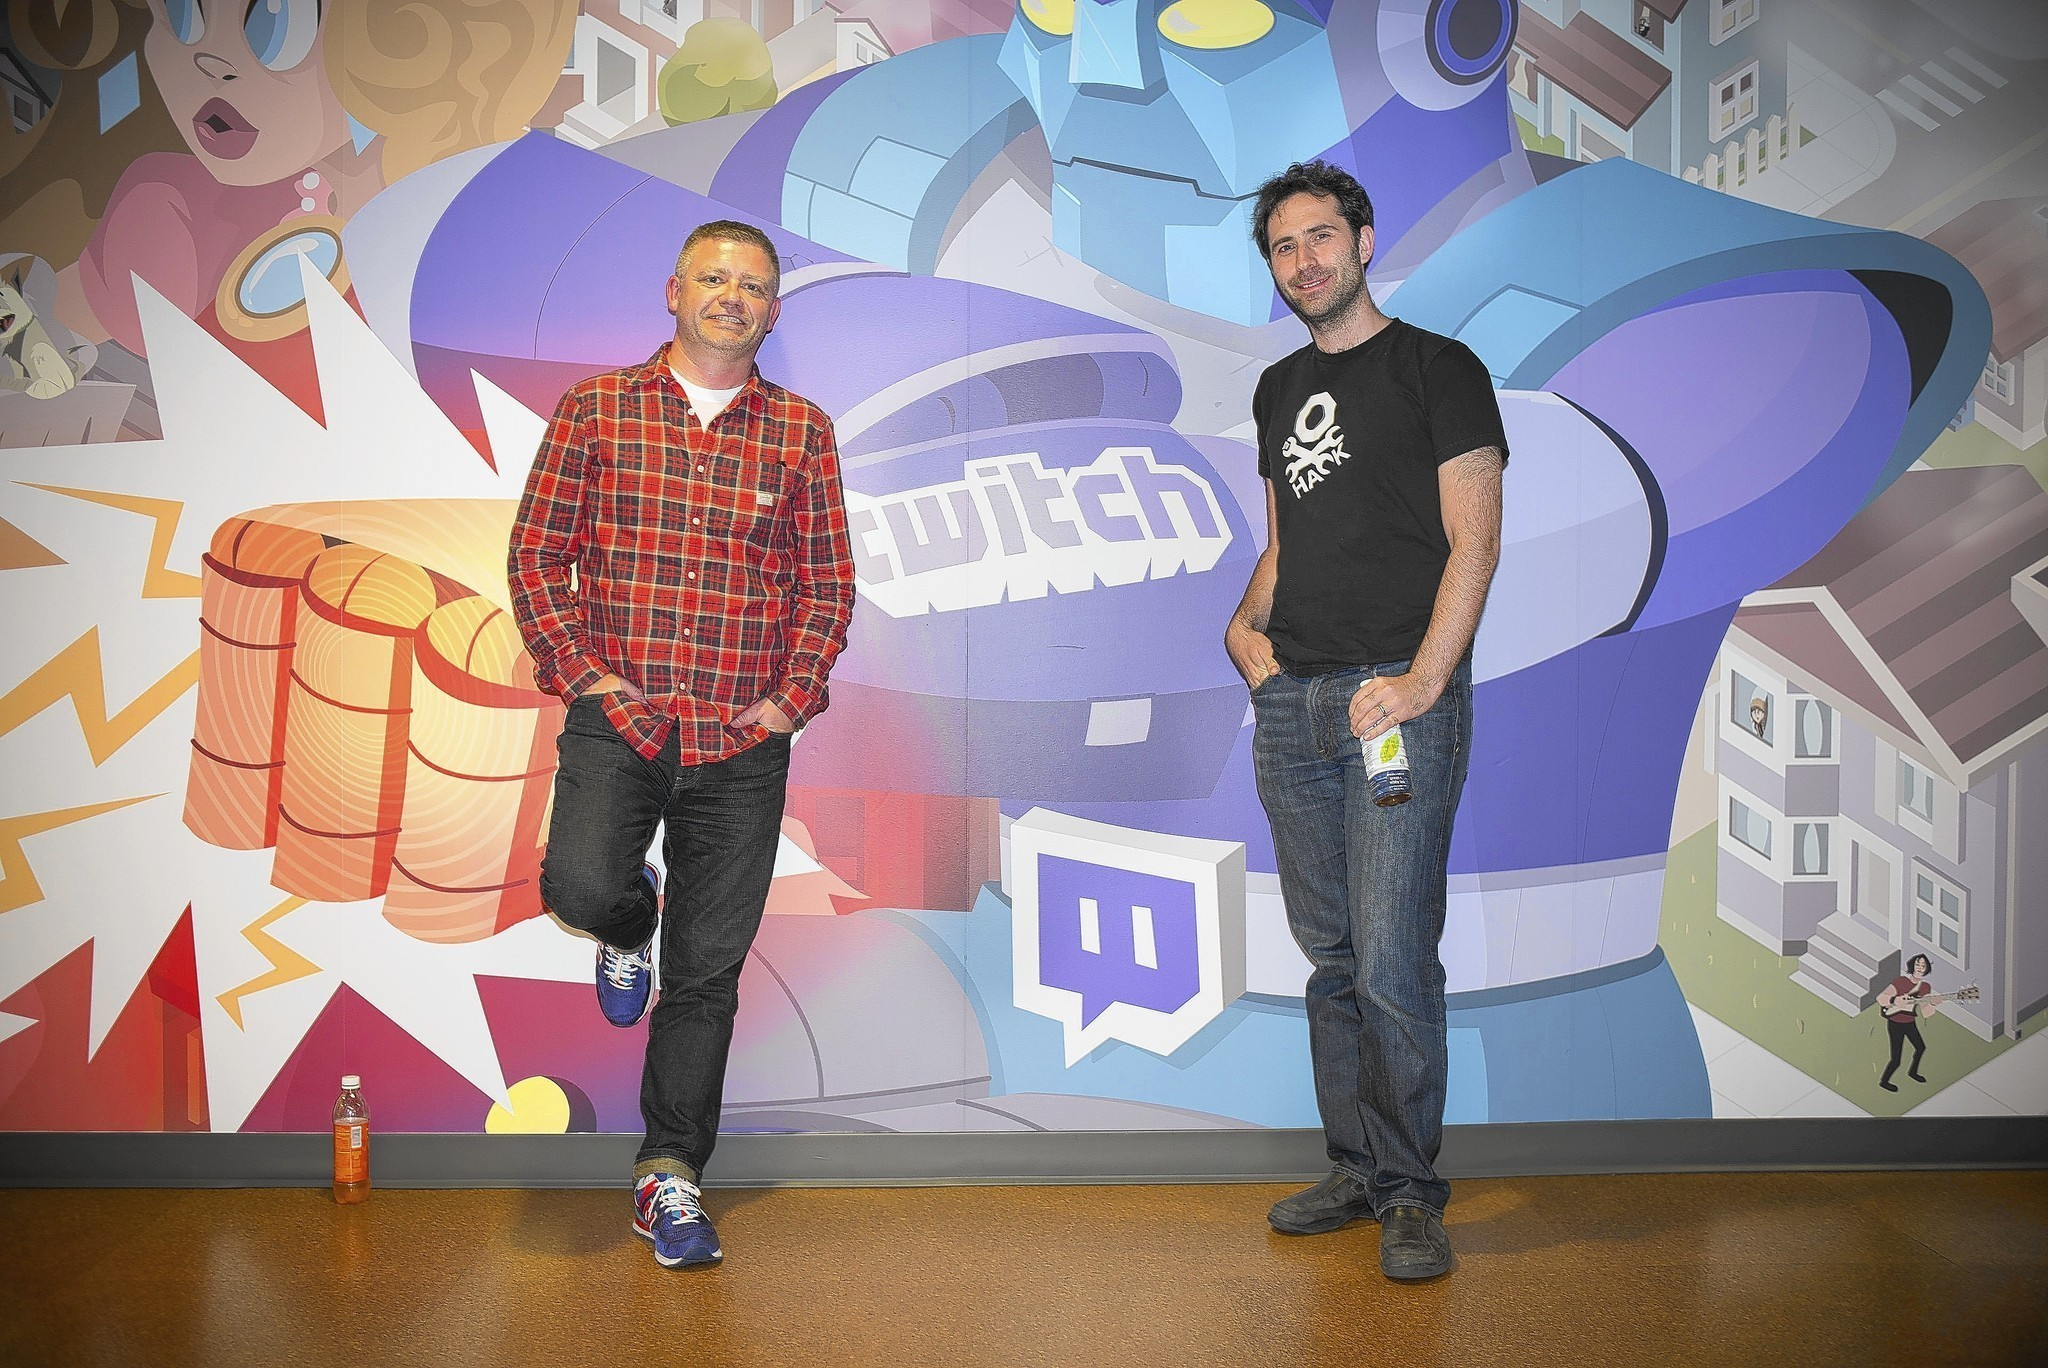 Google reportedly finalizes deal for live stream service Twitch